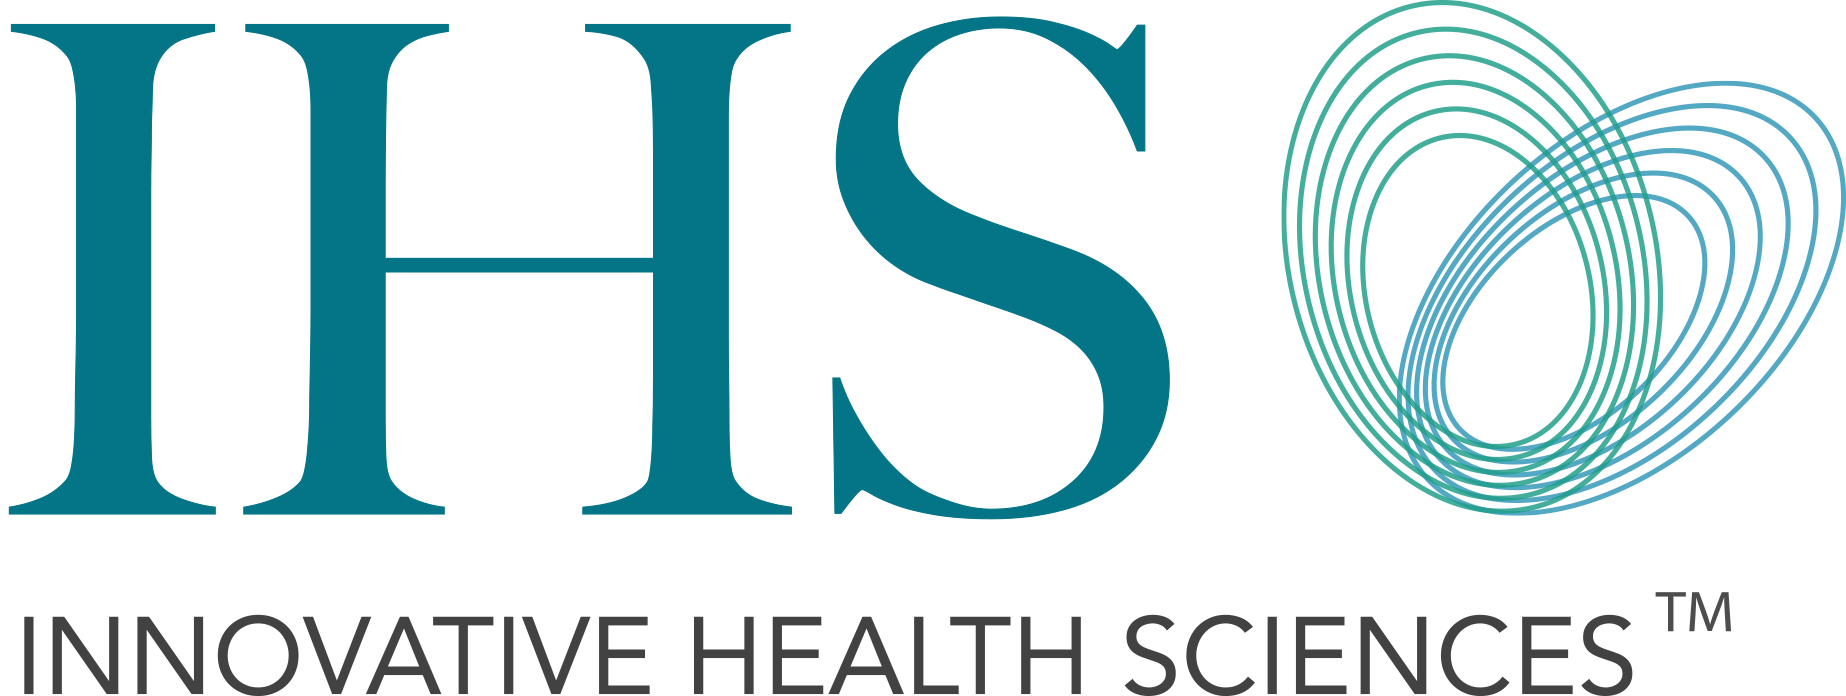 Innovative Health Sciences LLC